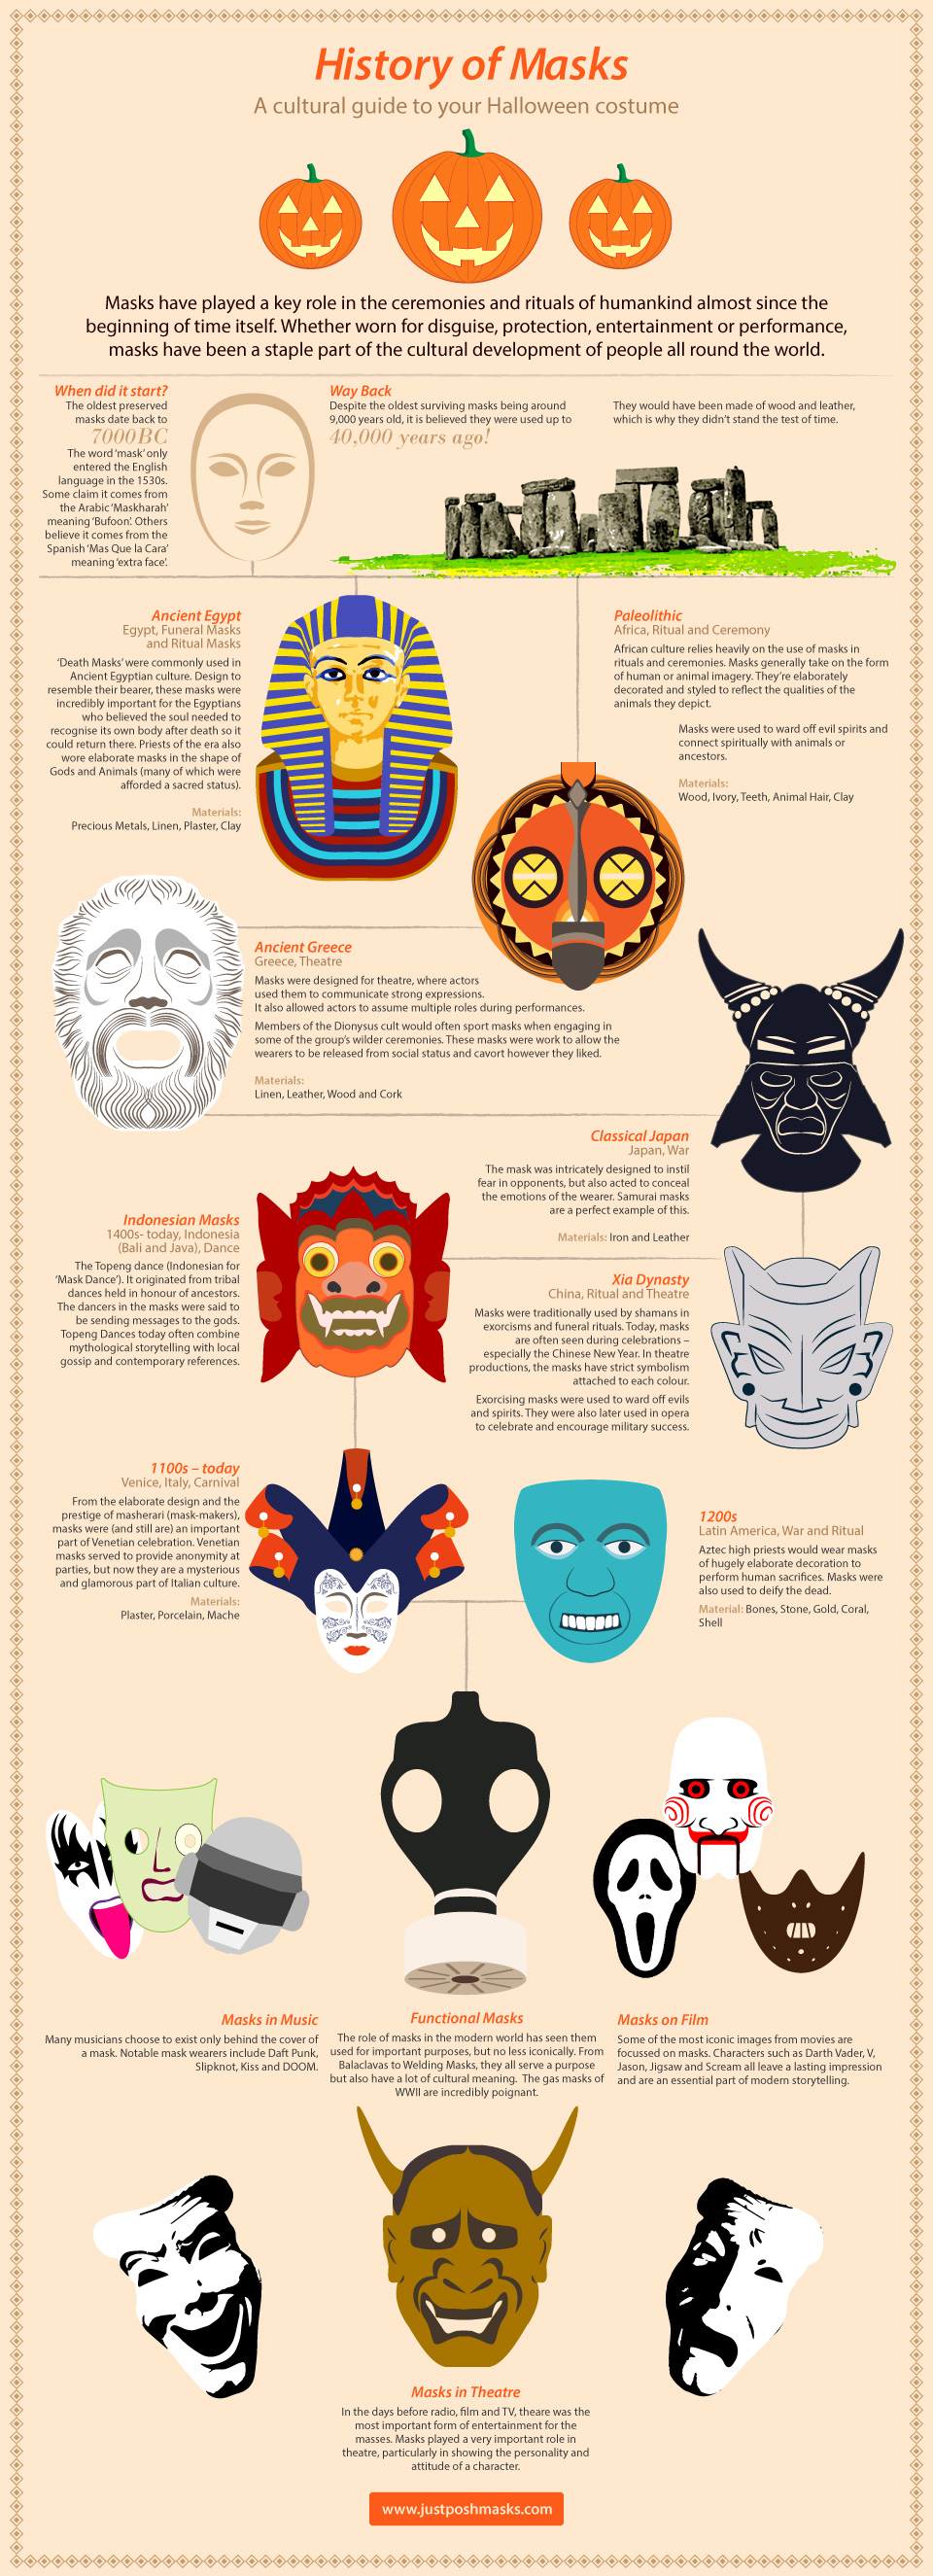 a-history-of-masks-for-halloween_5267dfa85dc27